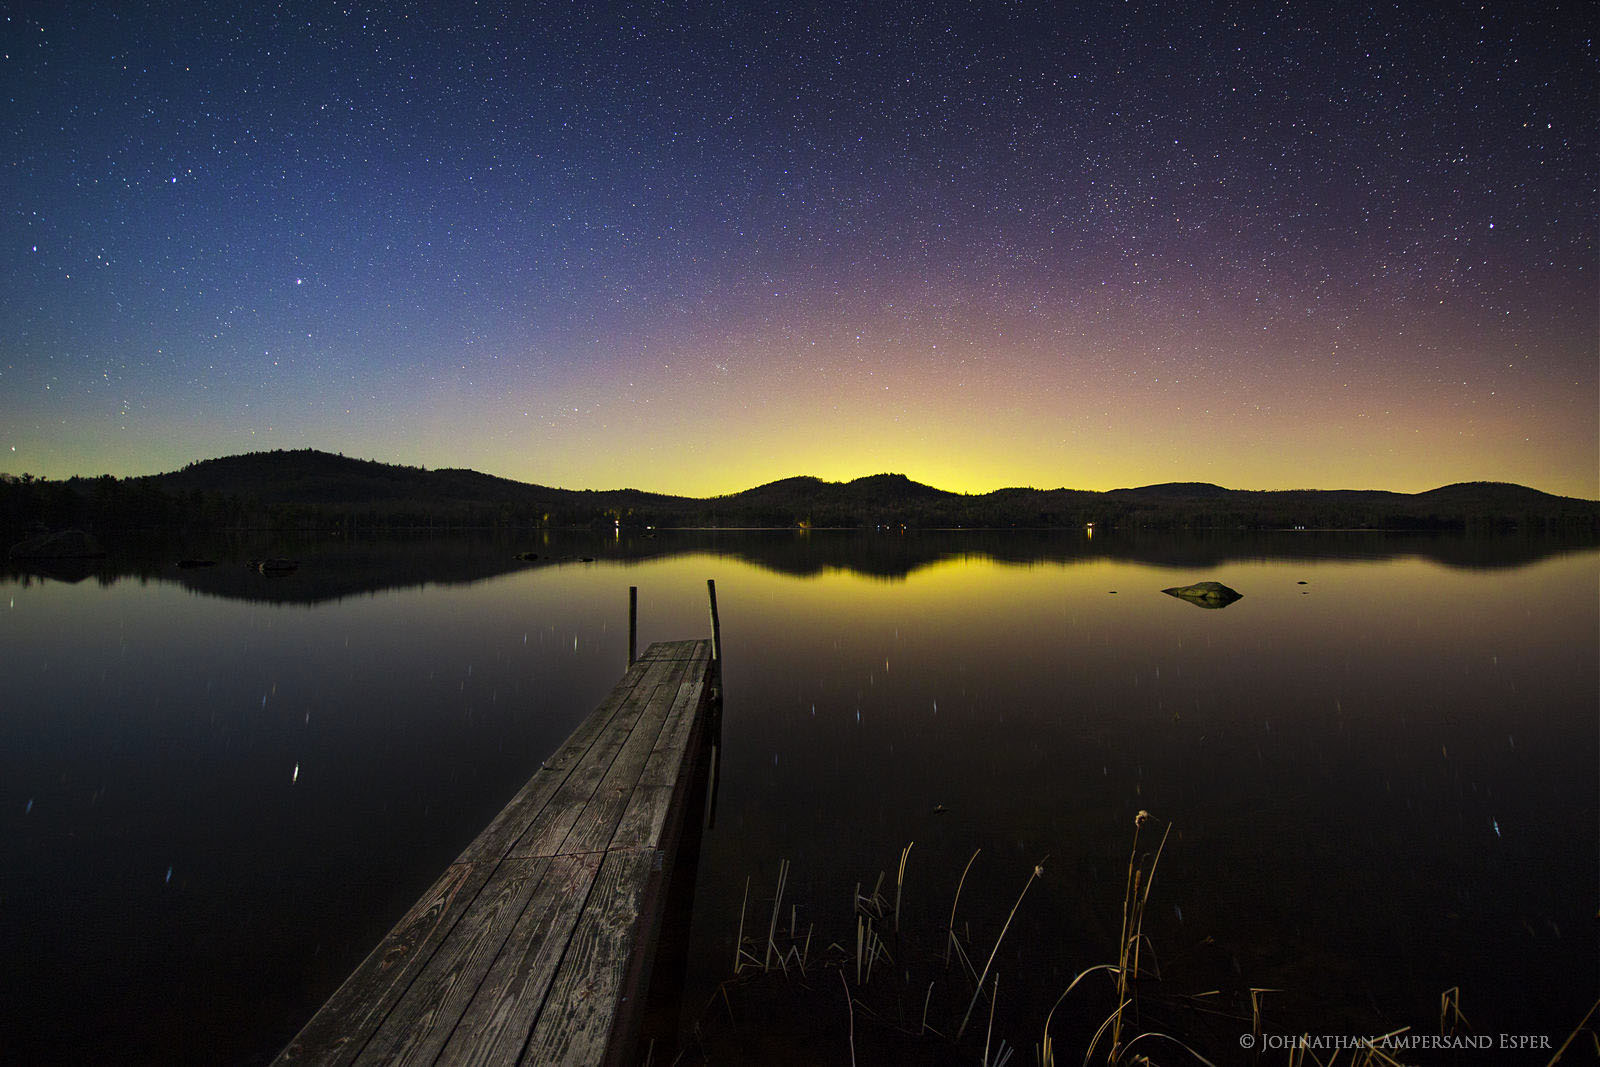 Fern Lake,aurora borealis,dock,wooden dock,night stars,night sky,April,2016,Fern Lake dock aurora borealis, photo